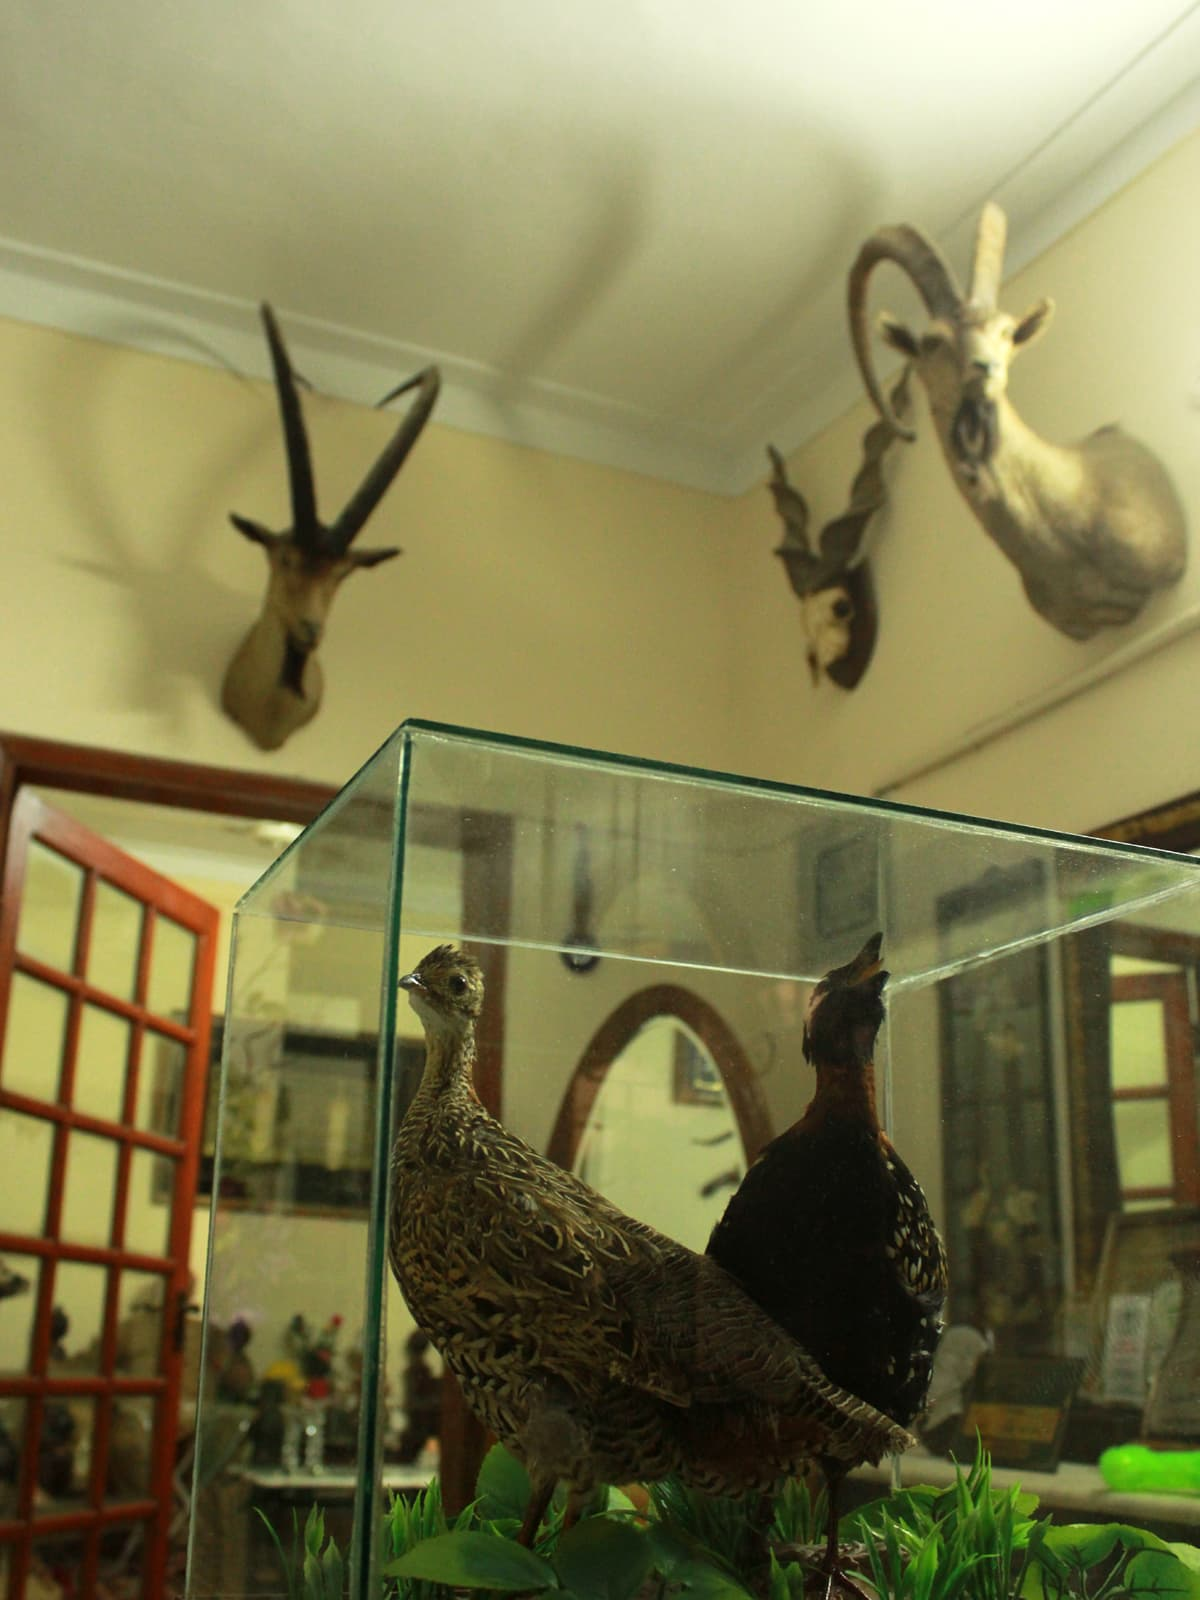 Male and female partridges hunted in Sindh. adorning a government officer's house